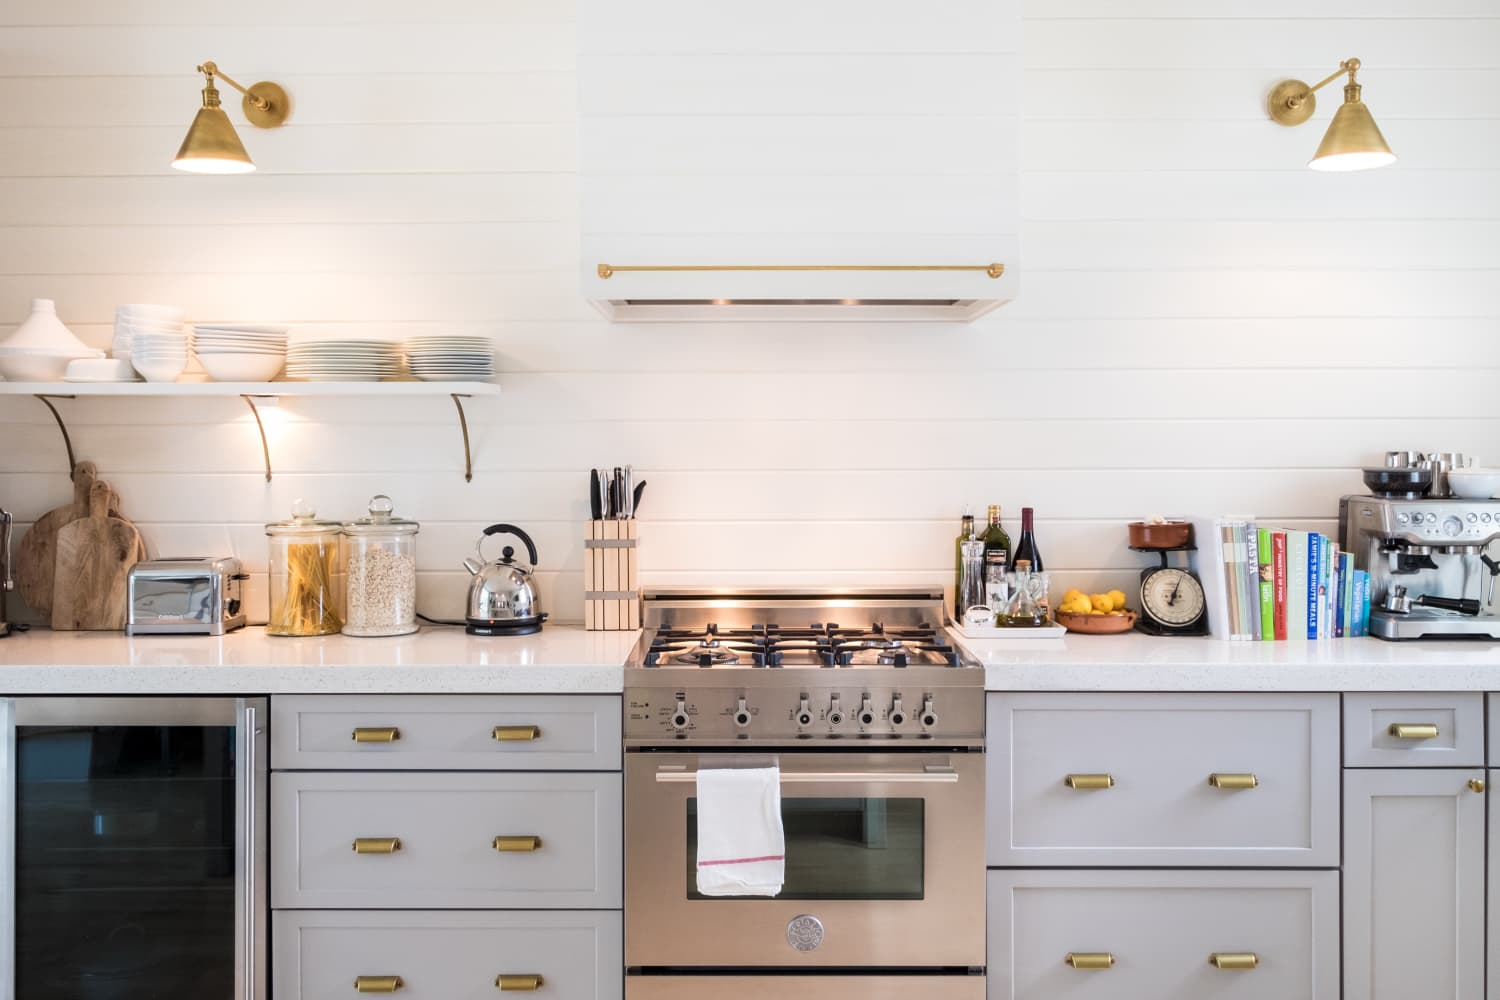 5 Ways to Fake Natural Light in Your Kitchen When You Really Don't Have It